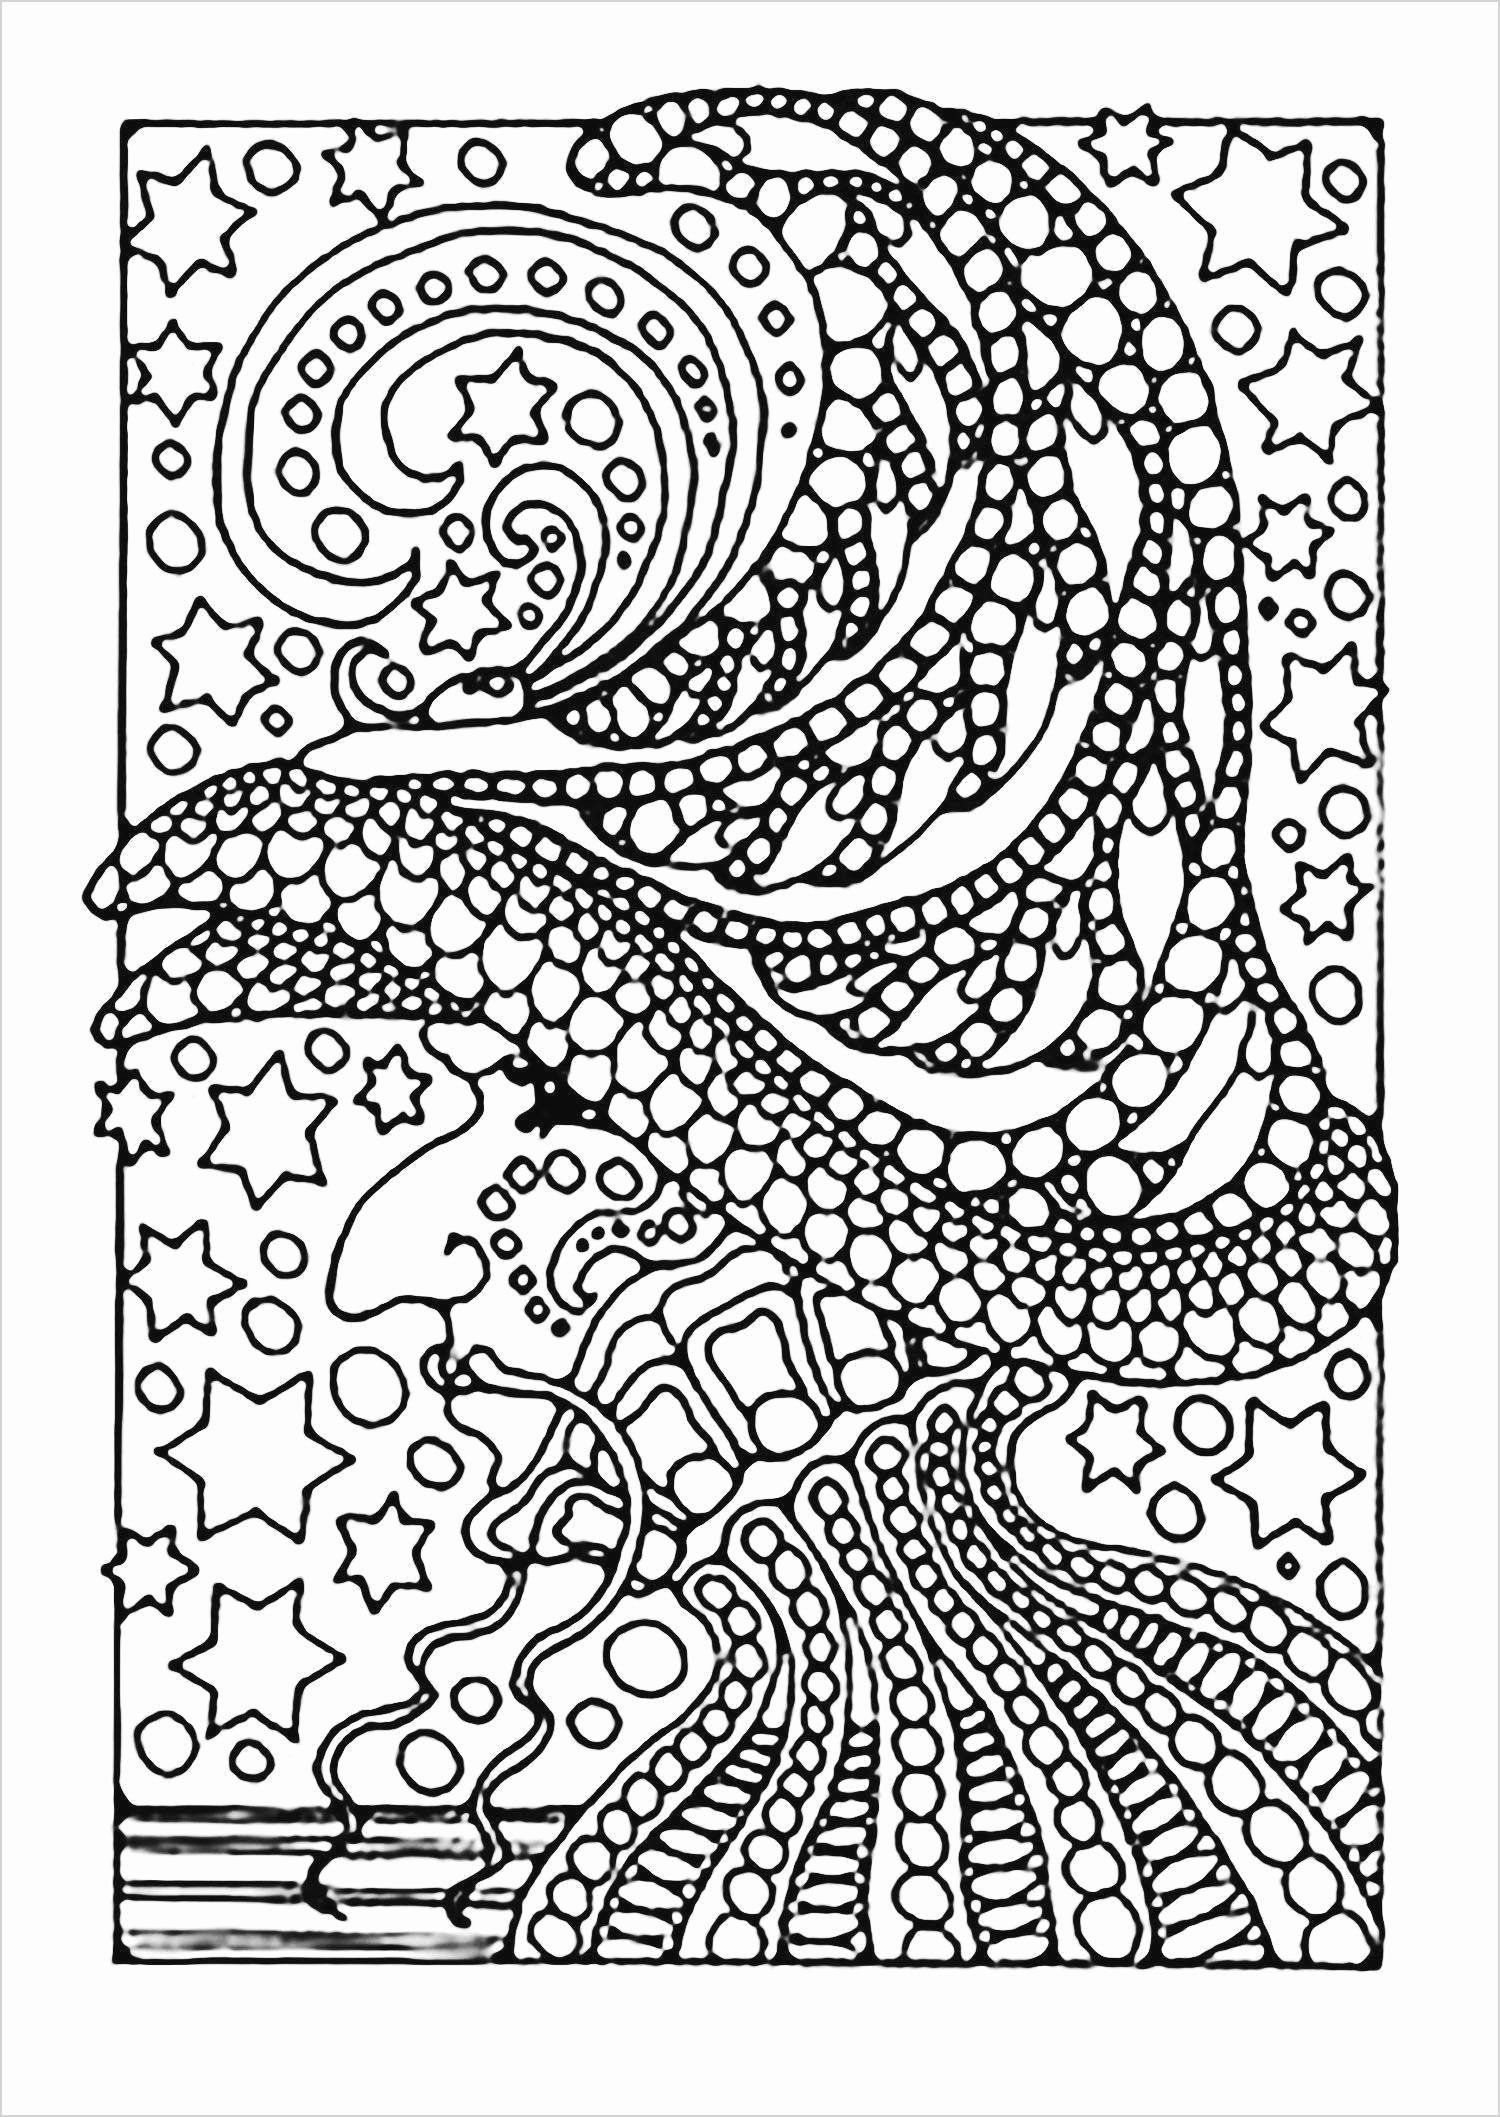 Coloring Sheets In Color Best Of Beautiful Coloring Pages To Color Halaman Mewarnai Bunga Buku Mewarnai Halaman Mewarnai